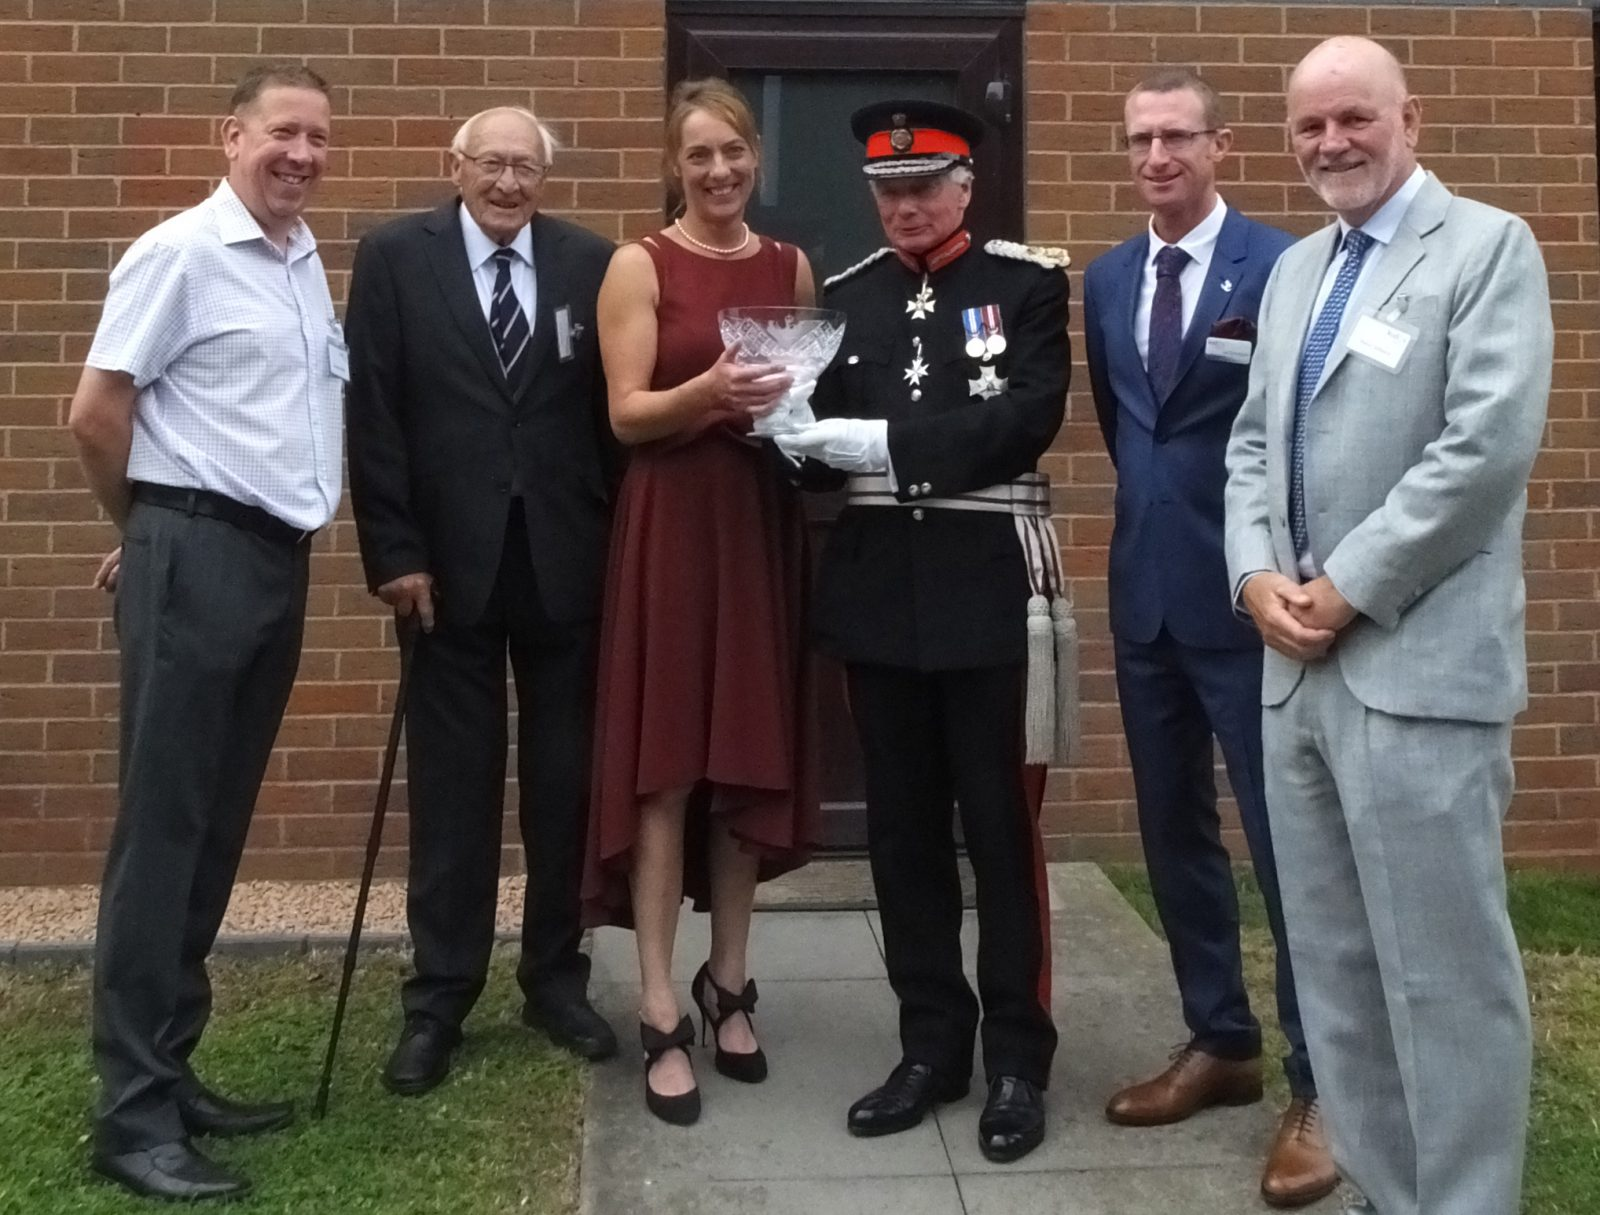 """Kudos Blends, based in Cleobury Mortimer, Shropshire celebrate a Queen's Award for Enterprise in the category of International Trade. The award was presented by Sir Algernon Heber-Percy, Lord Lieutenant of Shropshire at a champagne reception. Pictured here, Dinnie Jordan (founder and MD) accepts the award, accompanied by honoured guests, the very closest """"Friends of Kudos""""."""